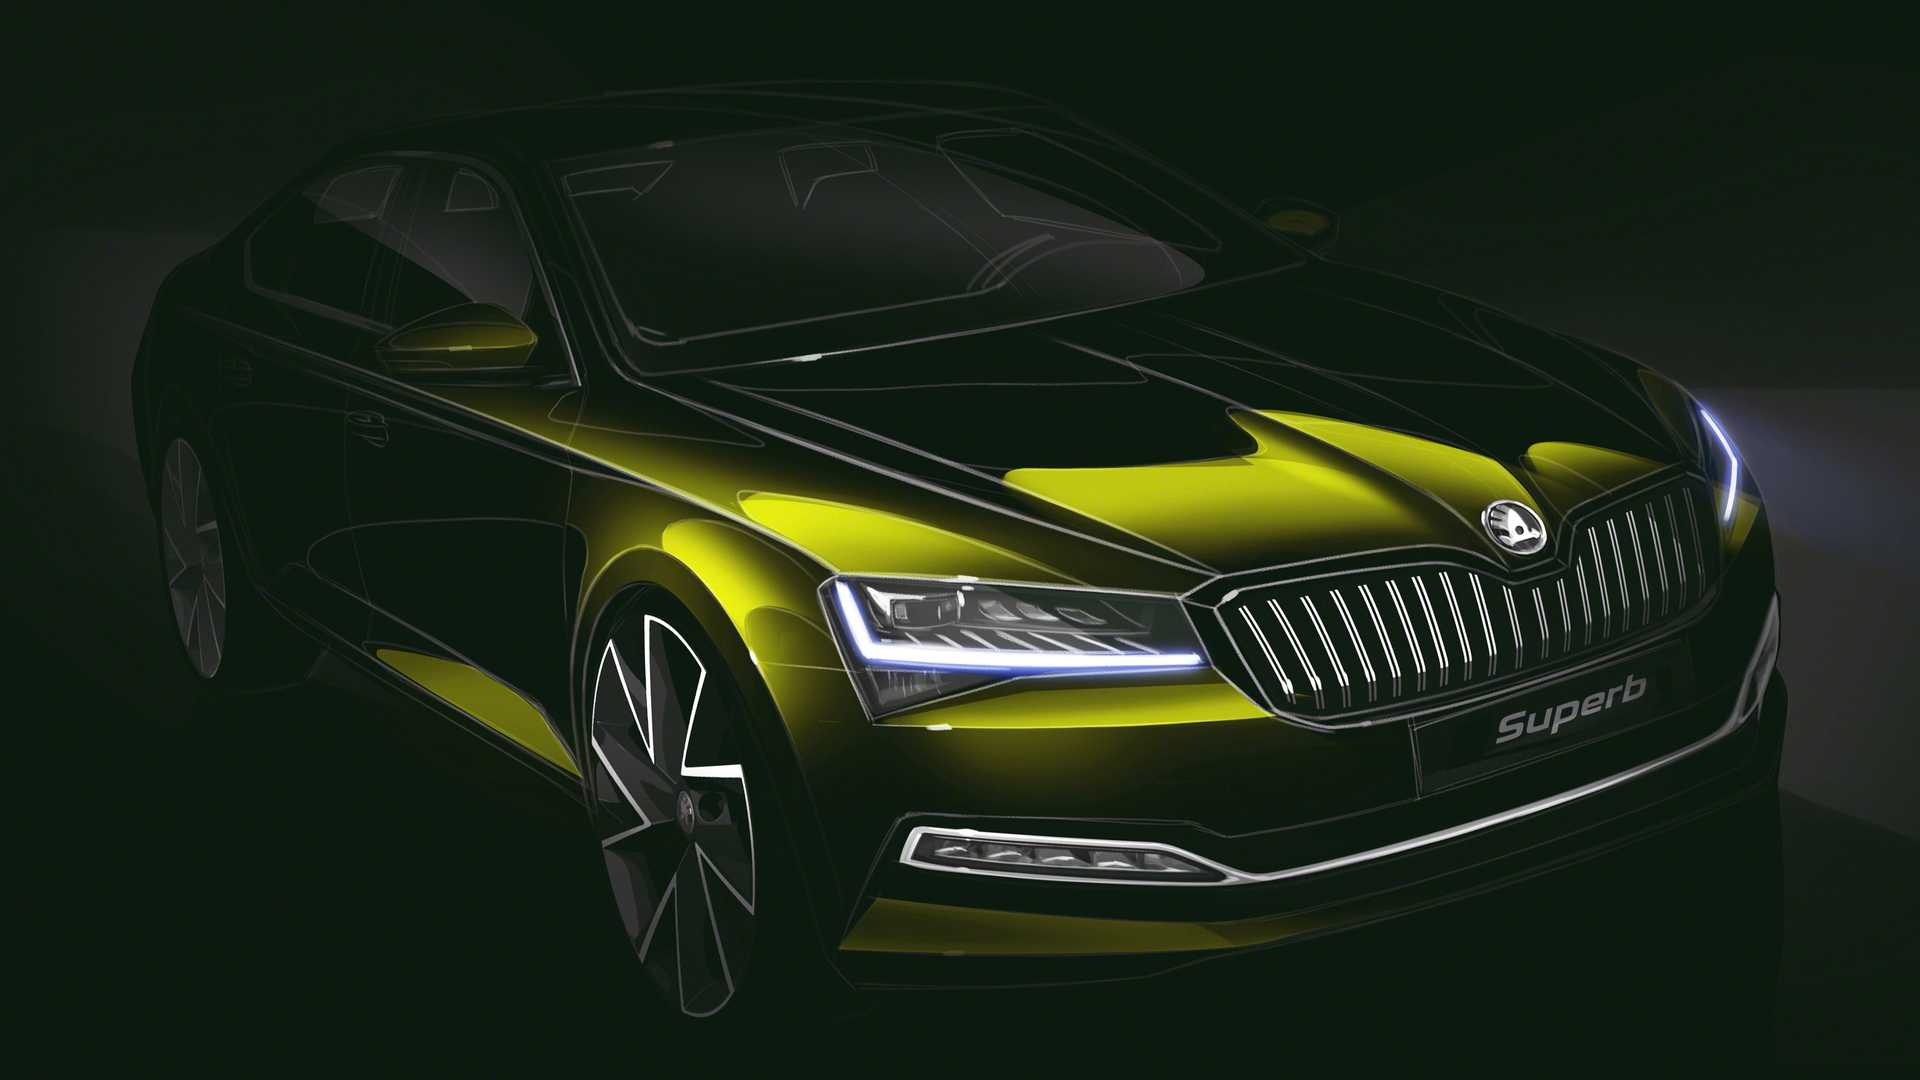 2020 Skoda Superb Teaser Previews The Updated Czech Flagship